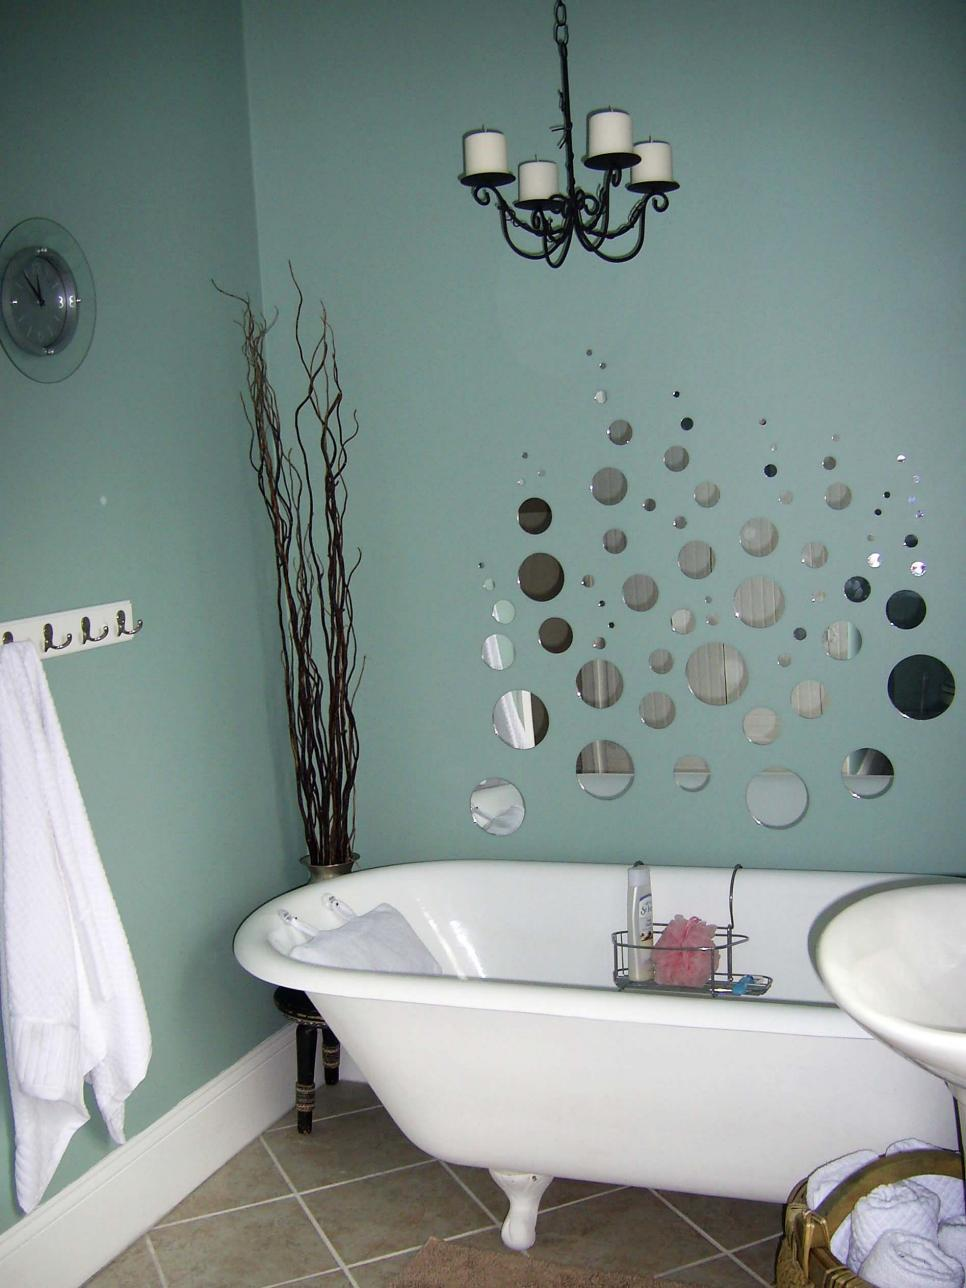 Bathrooms on a budget our 10 favorites from rate my space for Bathroom decorating ideas pictures